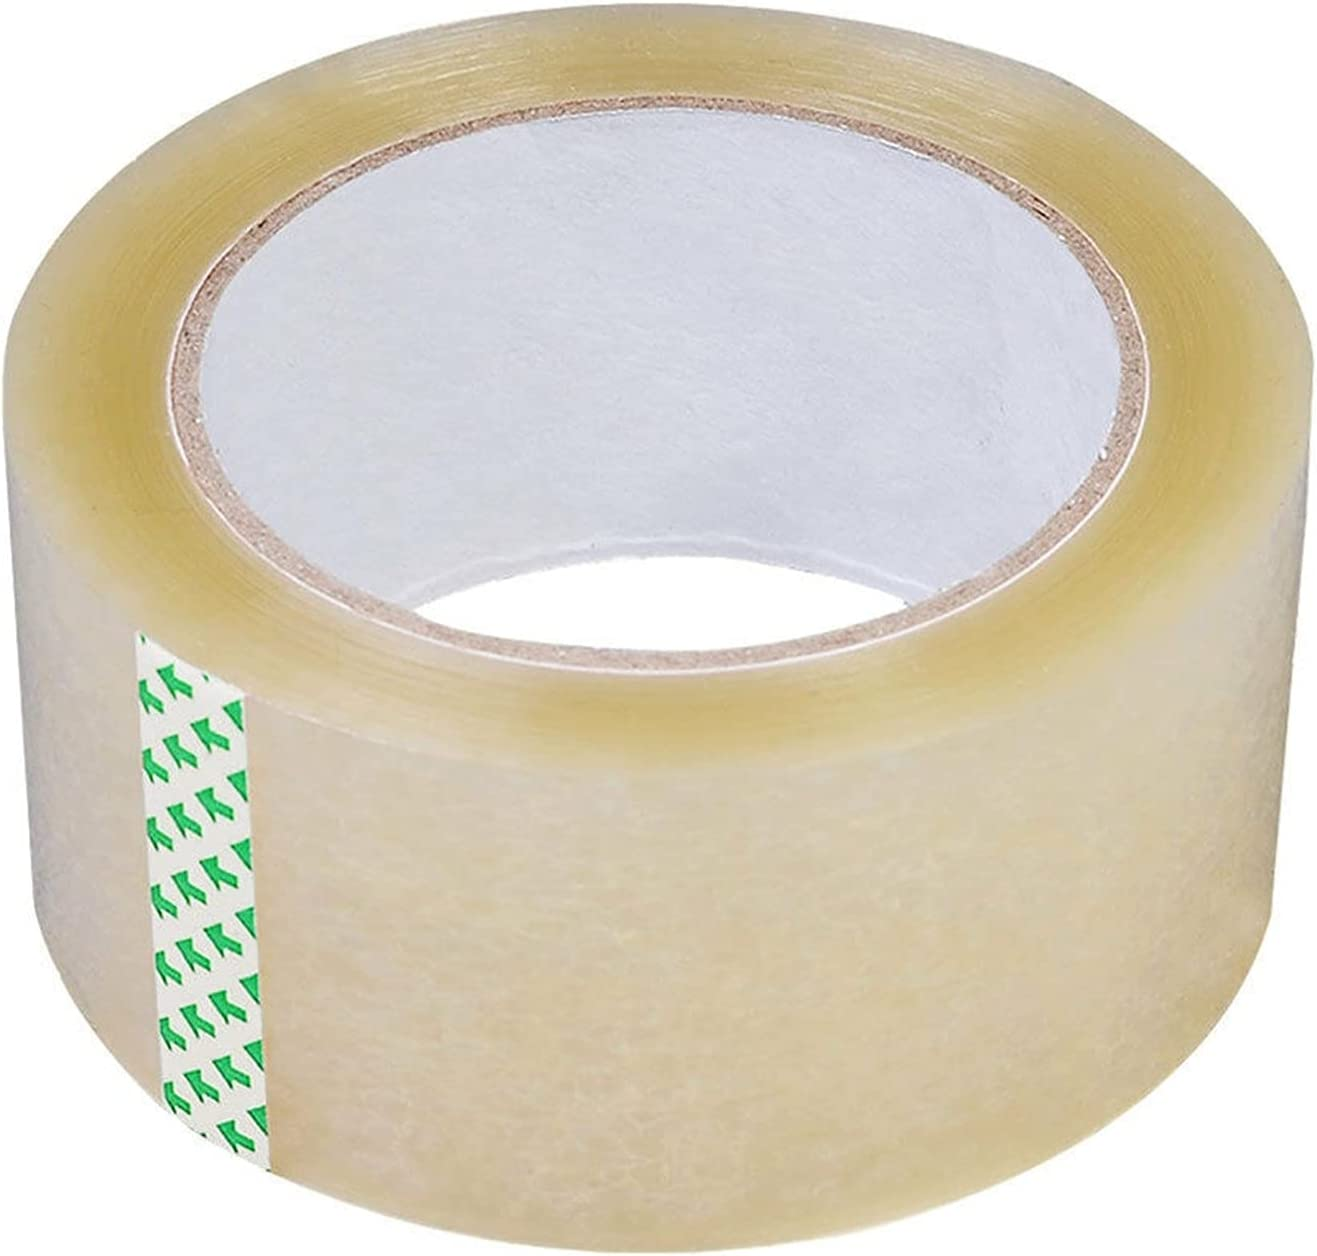 cossepair GT4-OXJ 12 Rolls Carton Sealing Clear low-pricing Packing Japan Maker New Tape Box